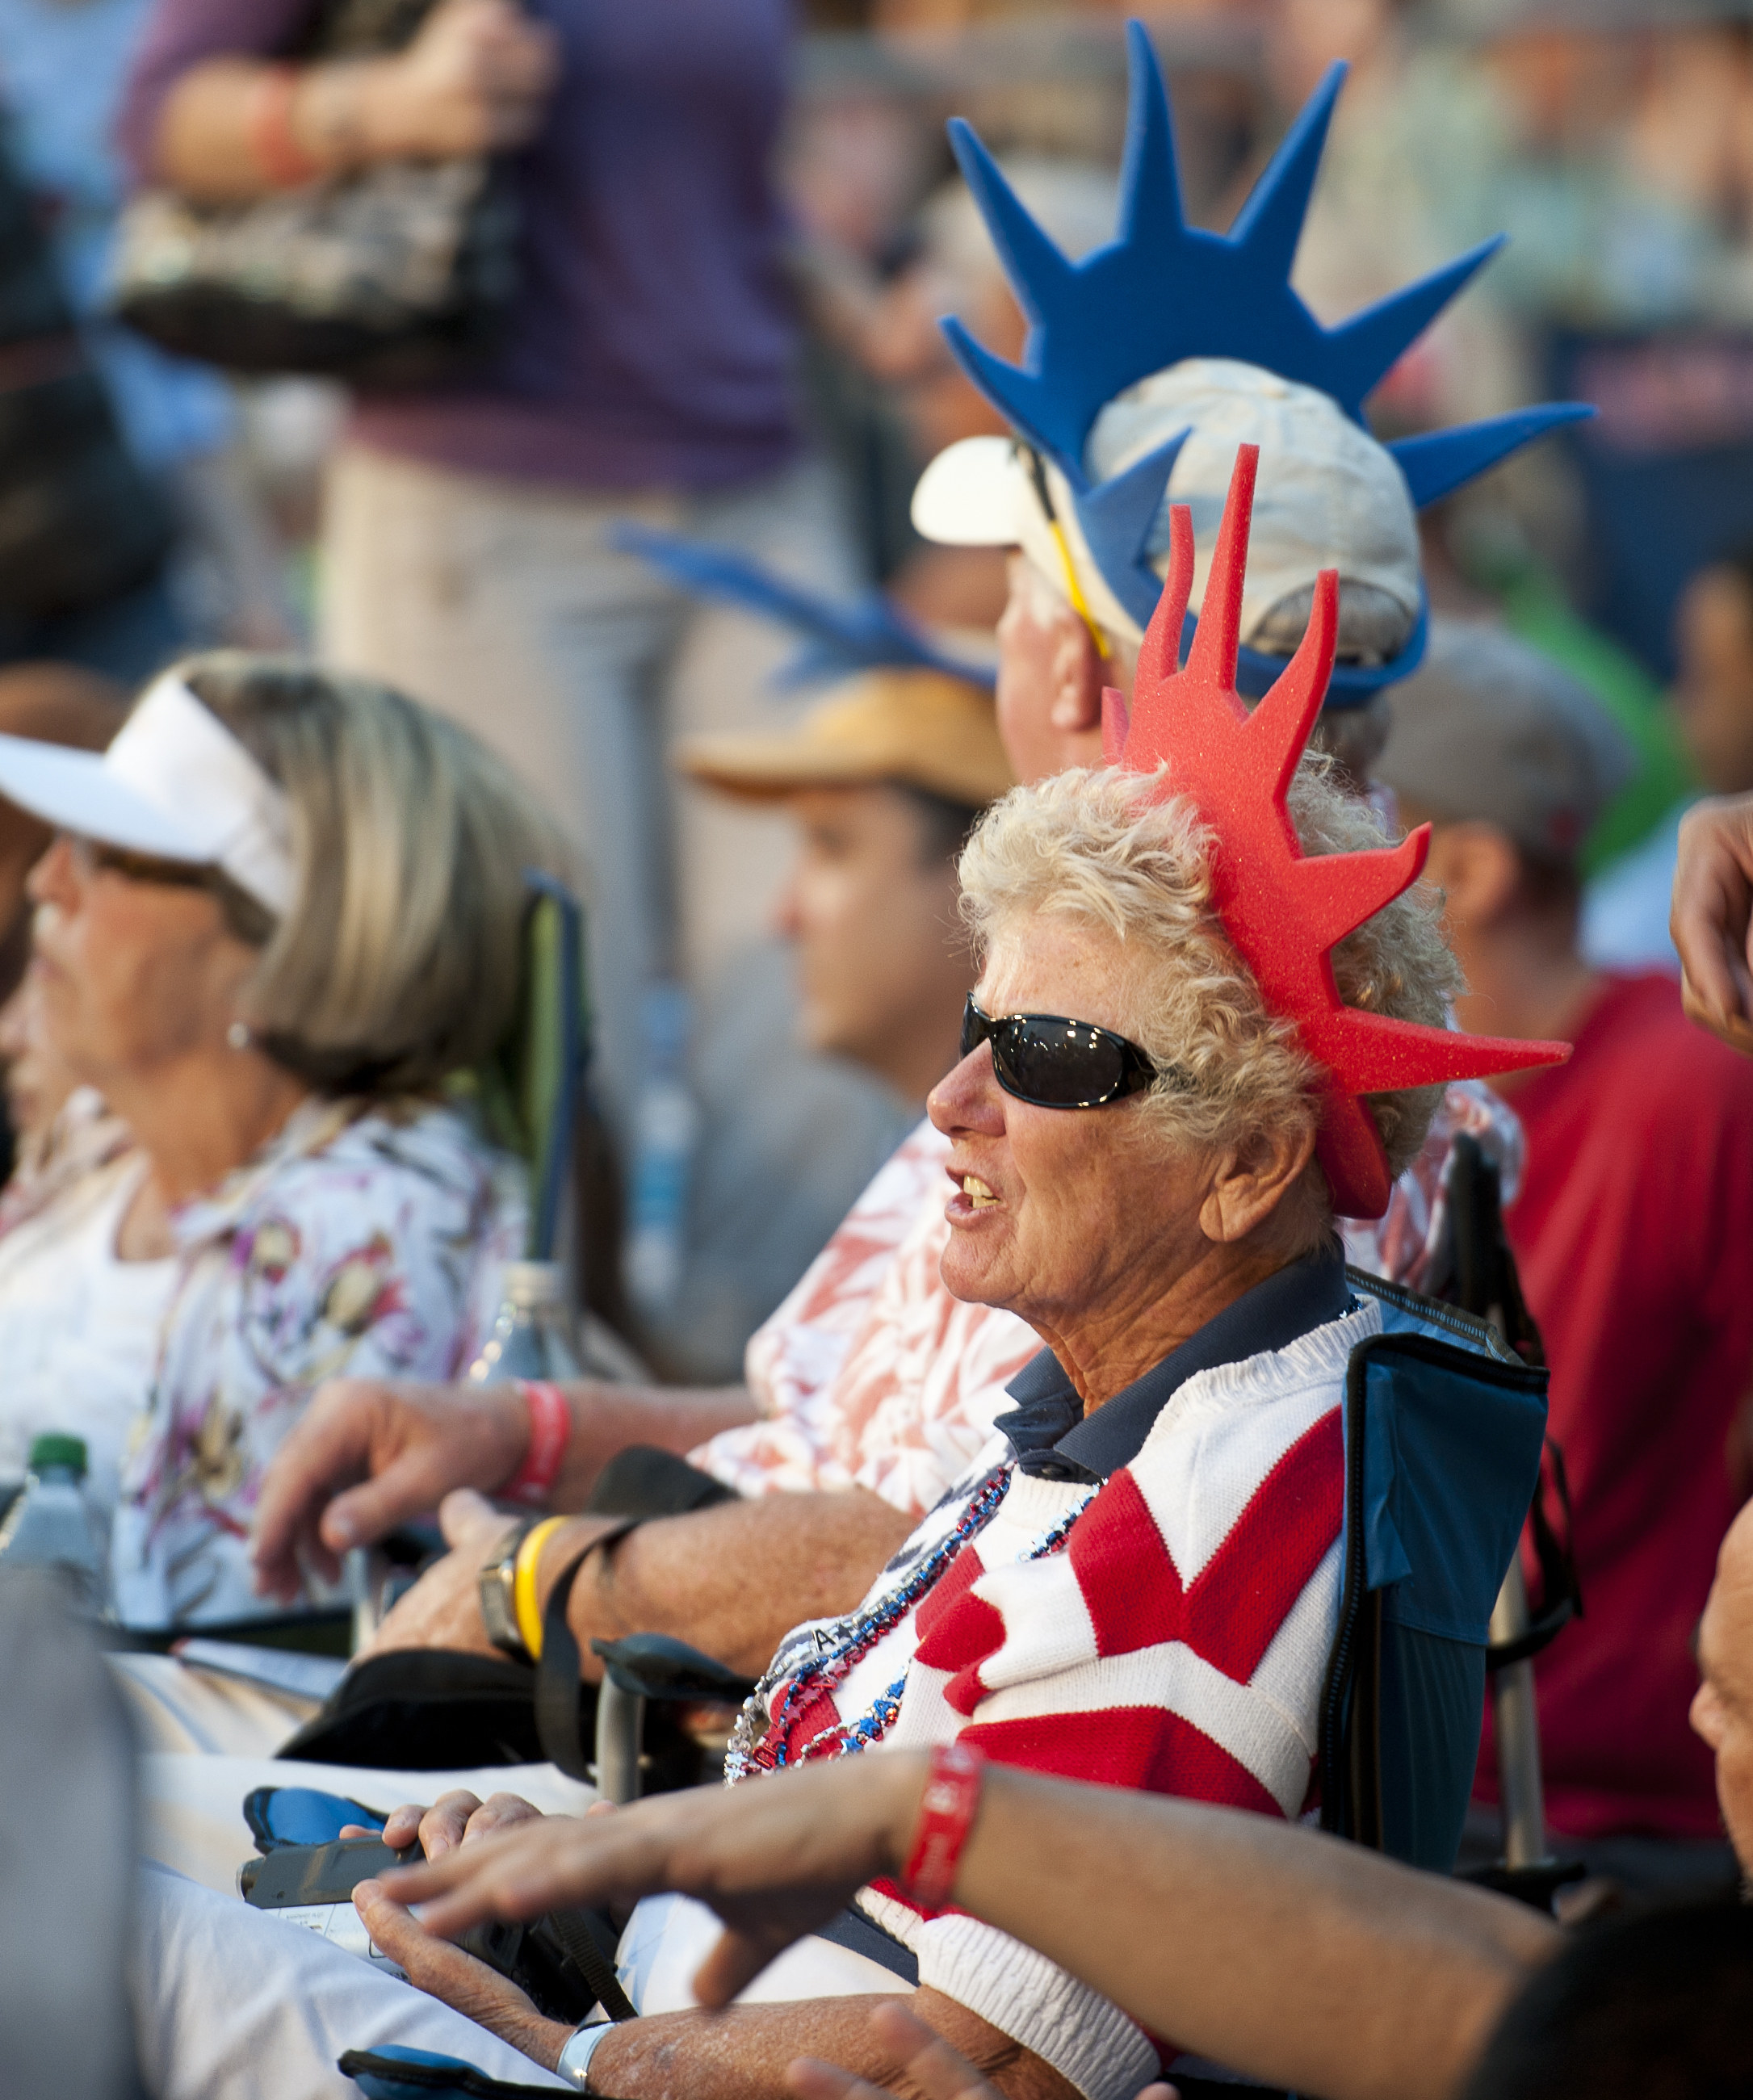 Close-up of a person wearing sunglasses and a US flag top and red Statue of Liberty–type crown